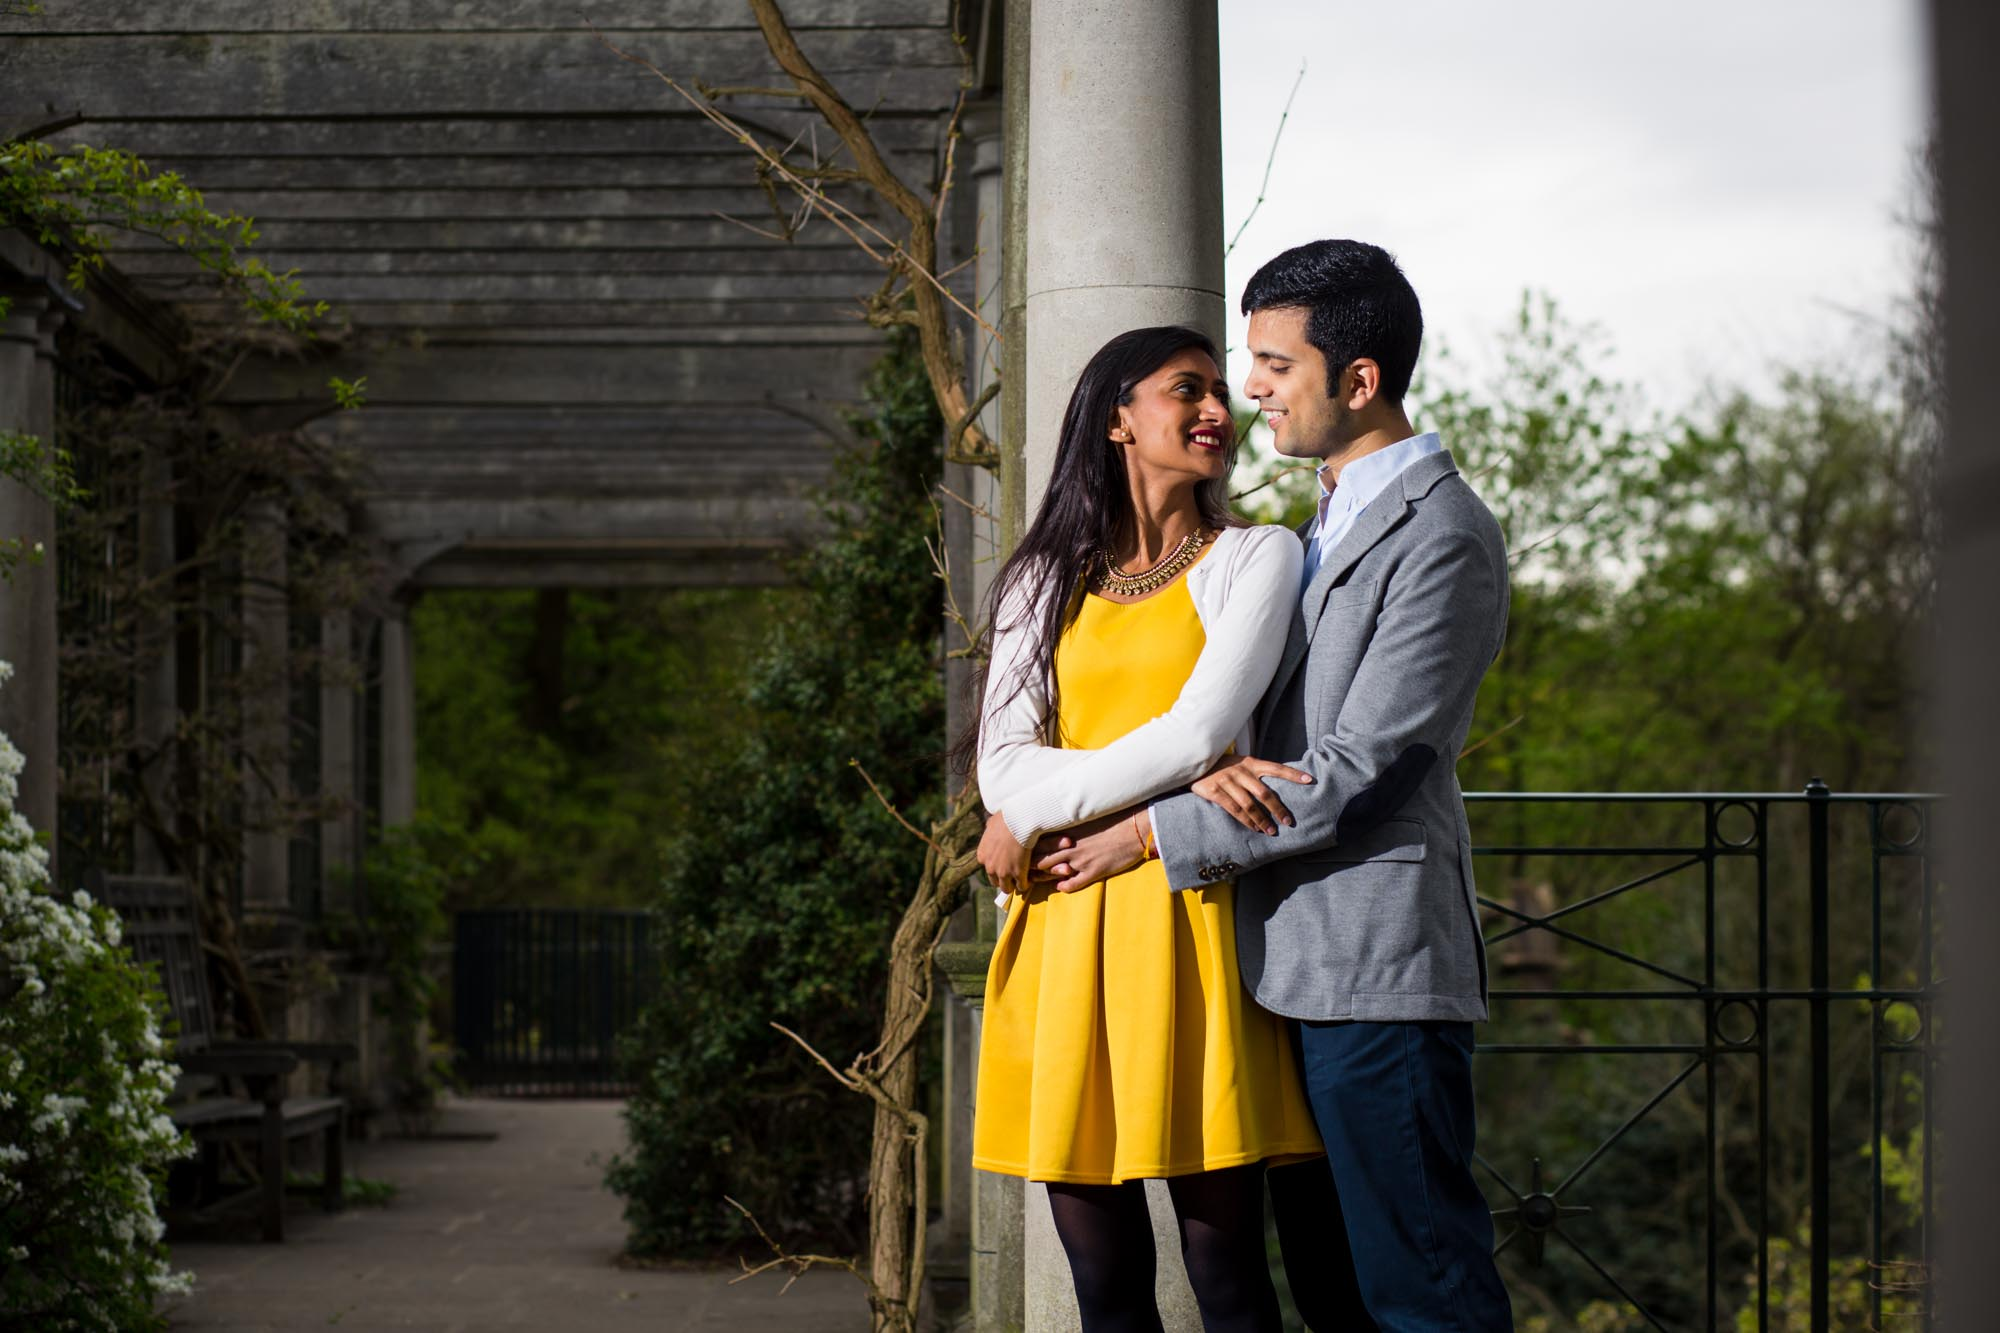 pre-wed shoot in london, pergola and hill gardens